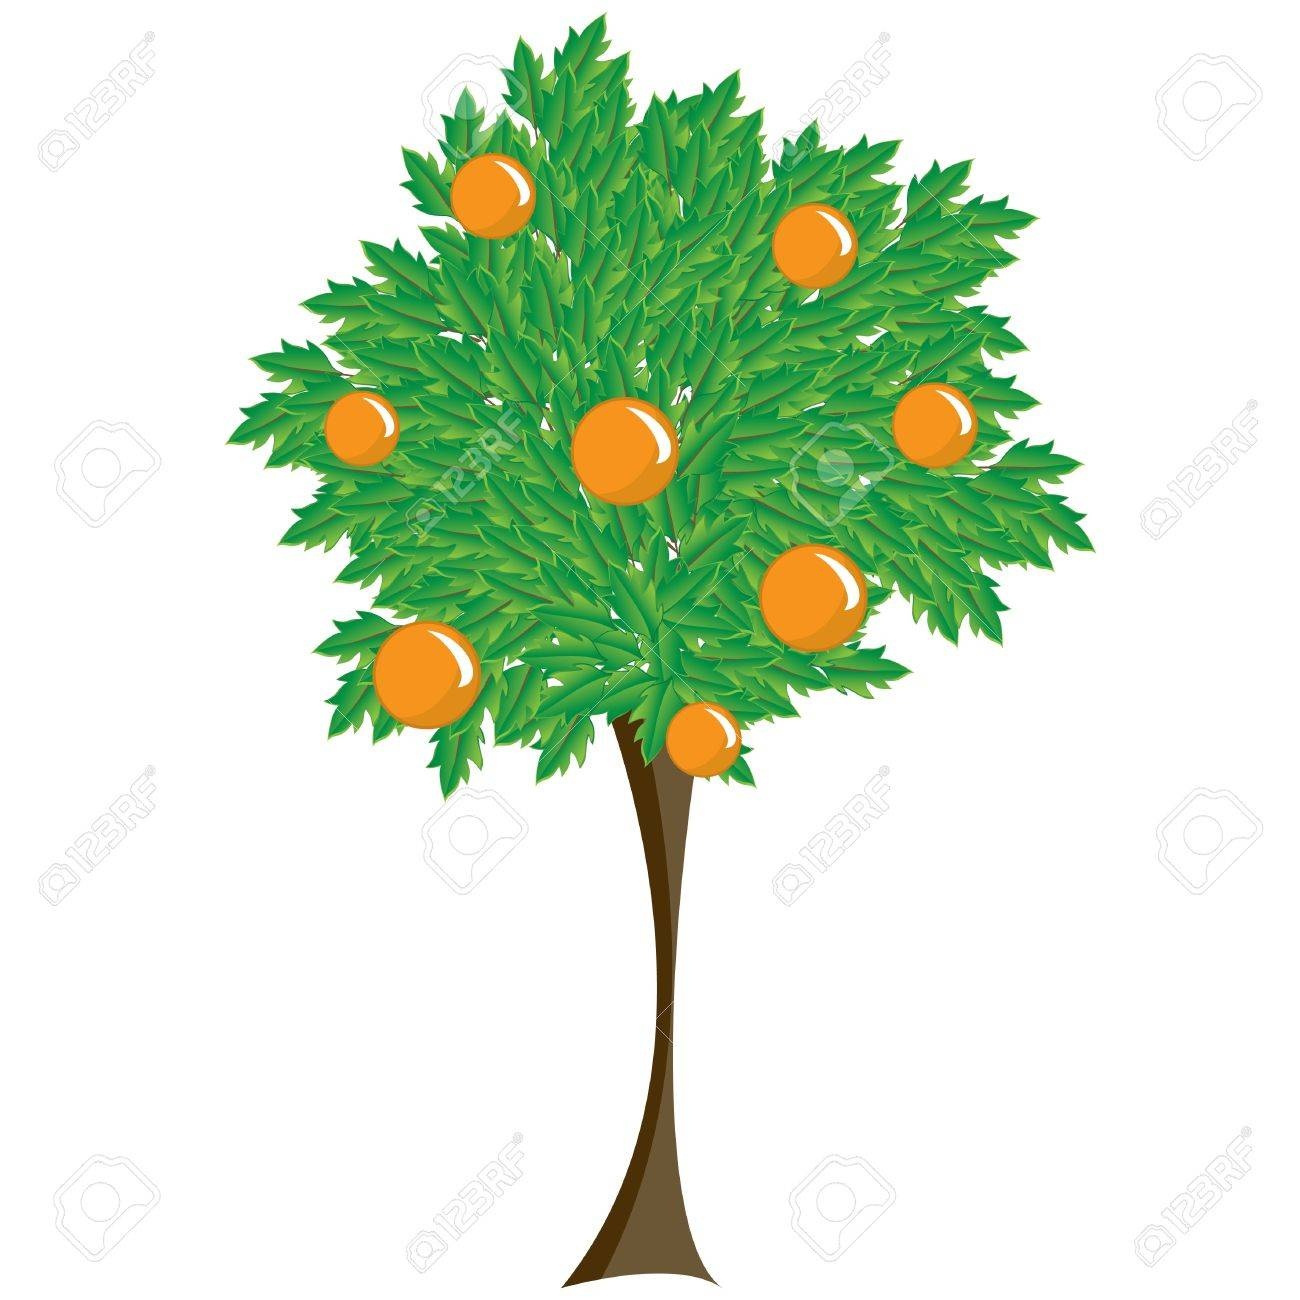 deciduous tree with orange fruit. Illustration on a white background Stock Vector - 7233932